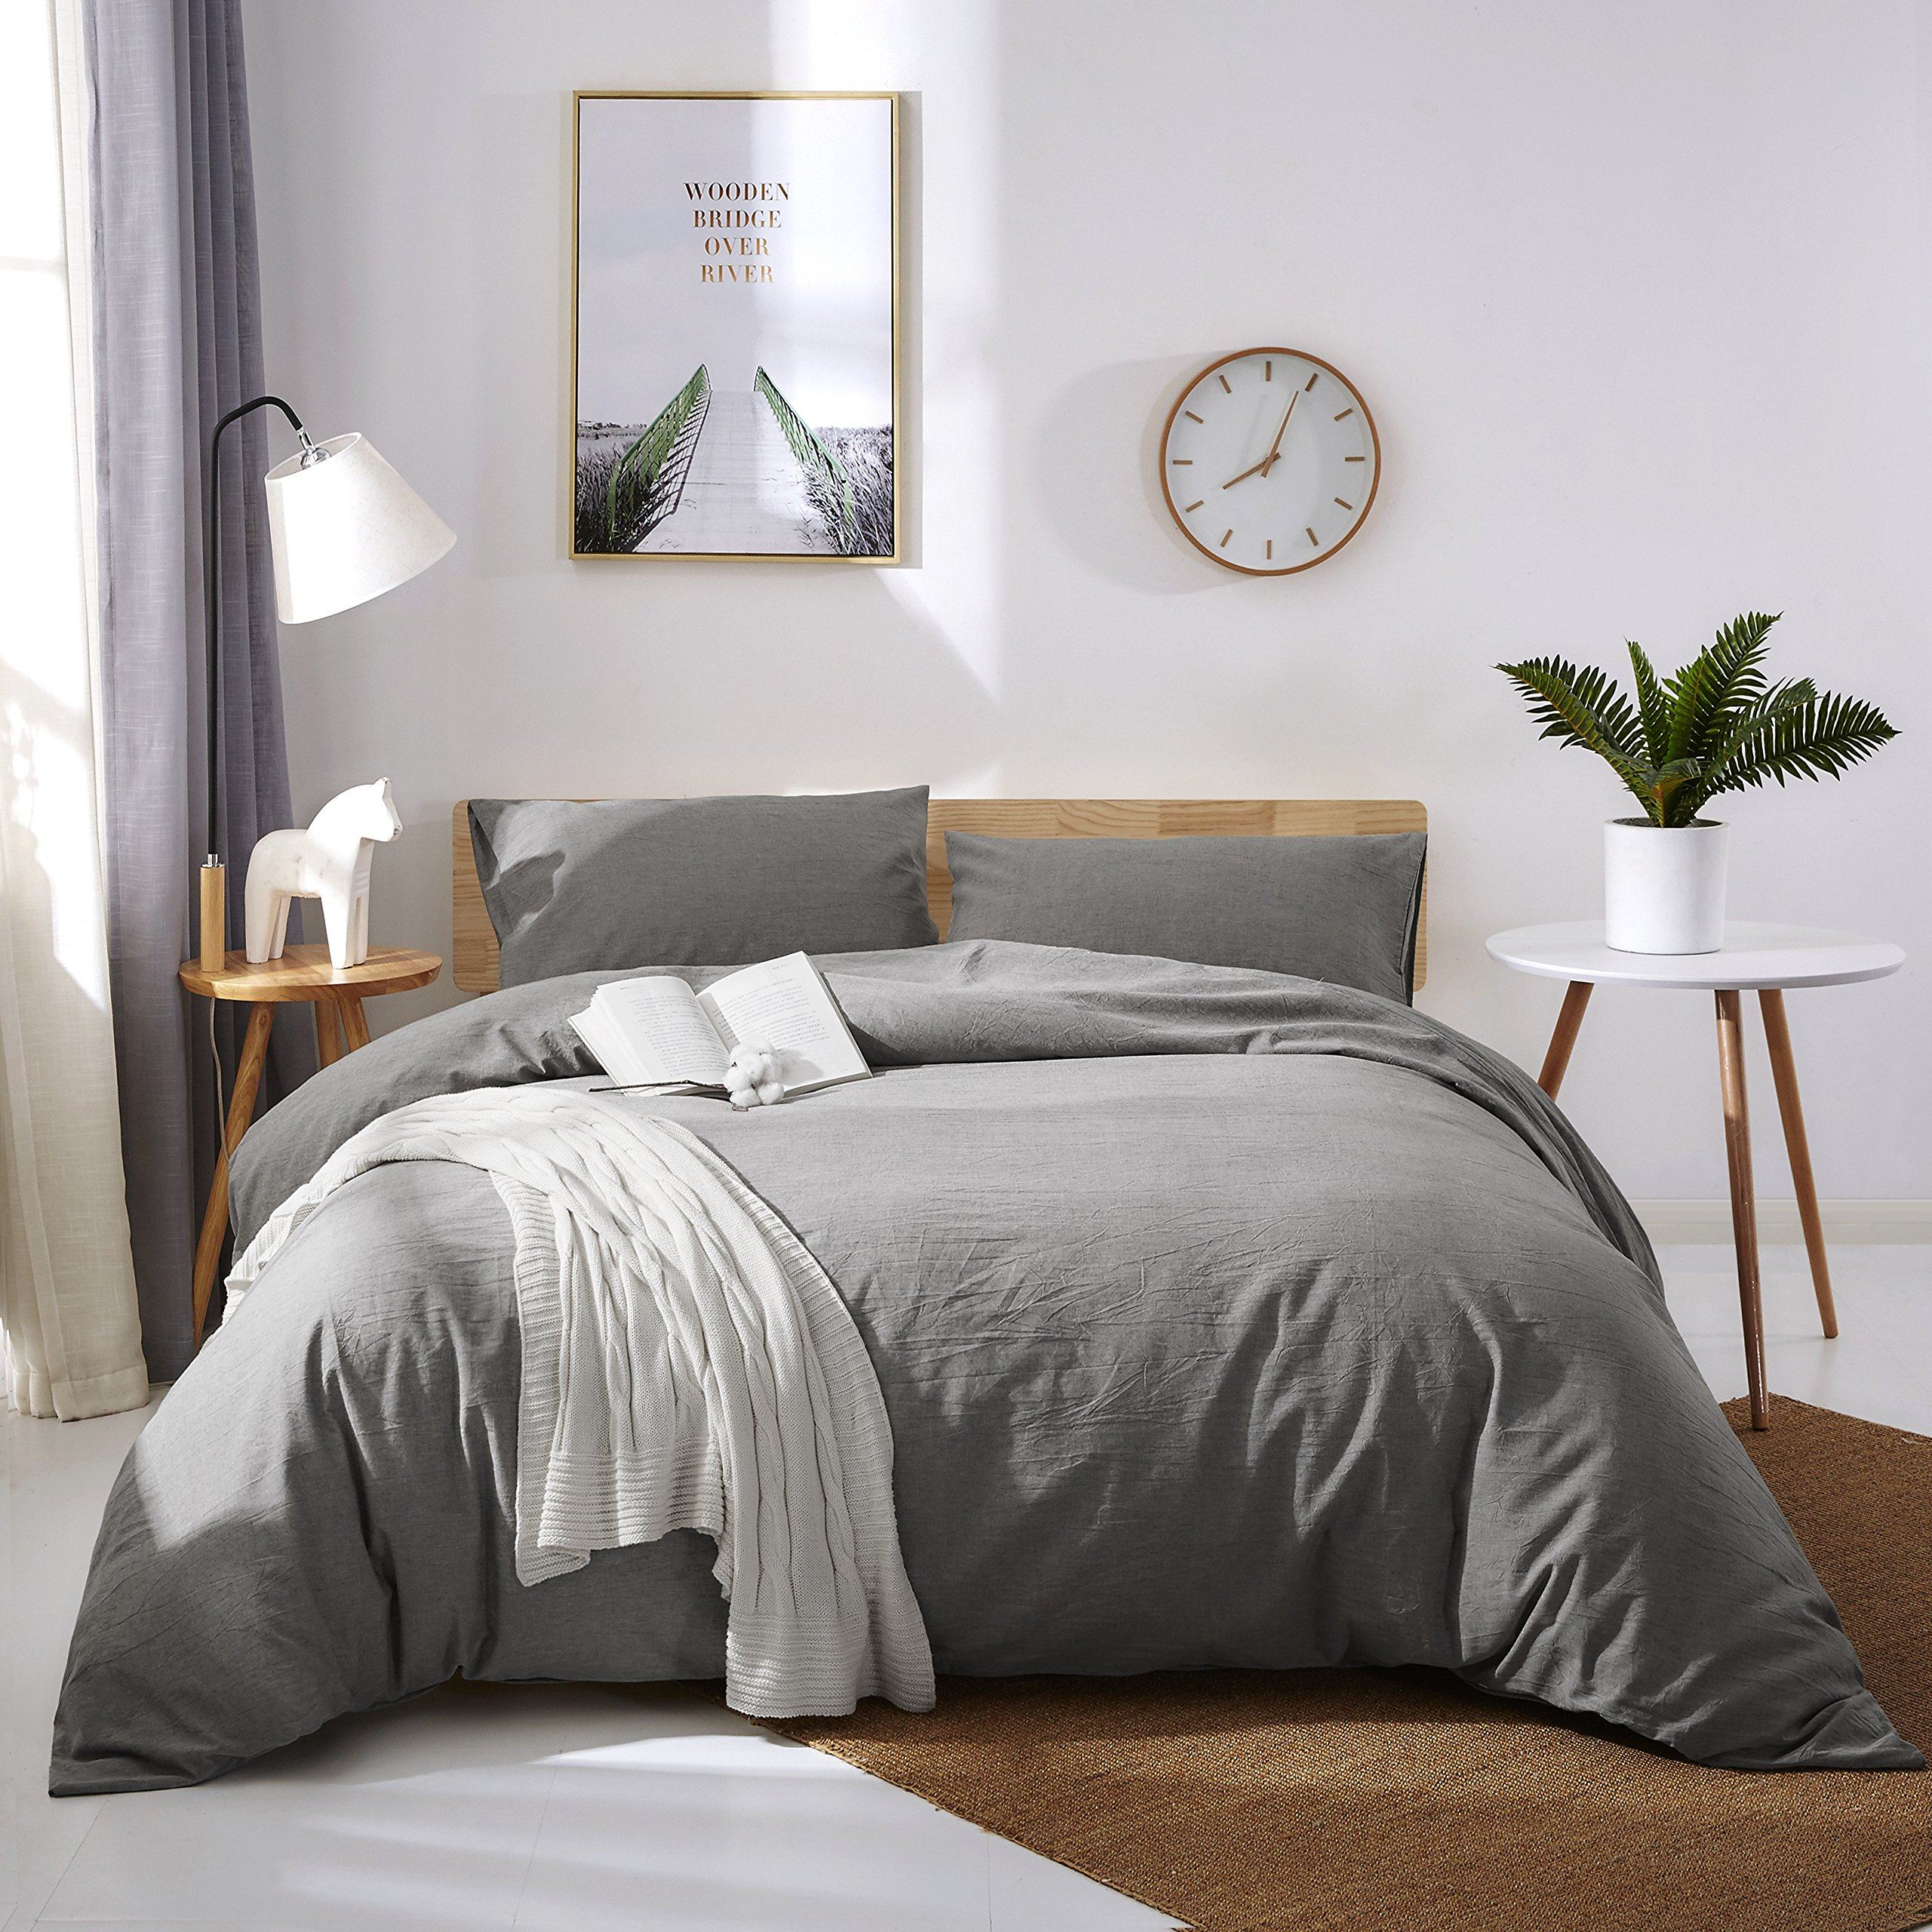 OAITE Duvet Cover Set, 100% Washed Cotton Duvet Cover, Ultra Soft and Easy Care, Bedding Queen Size Set, Color Gray, 3-Piece Duvet Cover Set Includes 2 Pillow Shams by OAITE